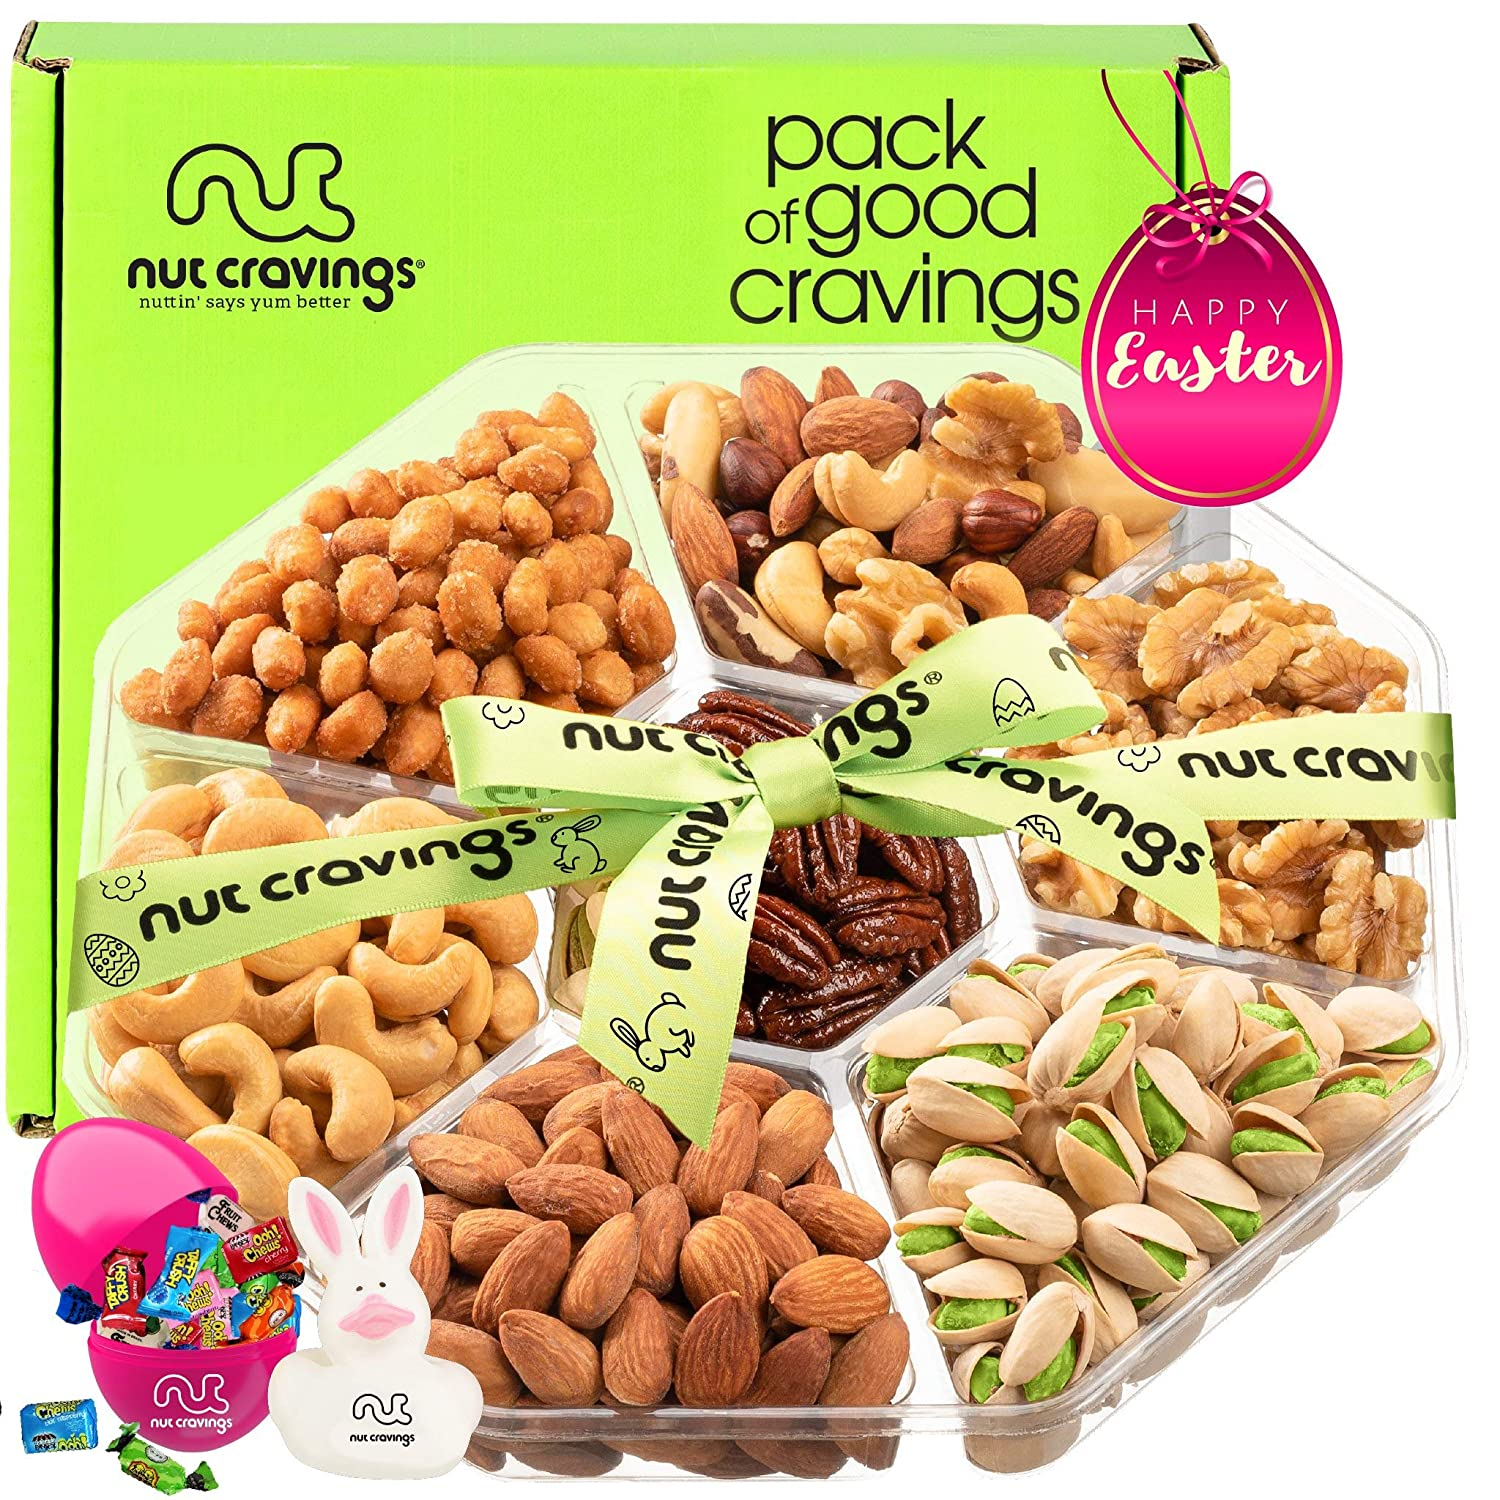 Premade Easter Gift Baskets for Adults & Kids, Candy Filled Eggs + Bunny - Gourmet Nut Platter (7 Mix Tray) - Healthy Food Arrangement, Care Package Variety, Prime Assortment, Kosher Snack Box